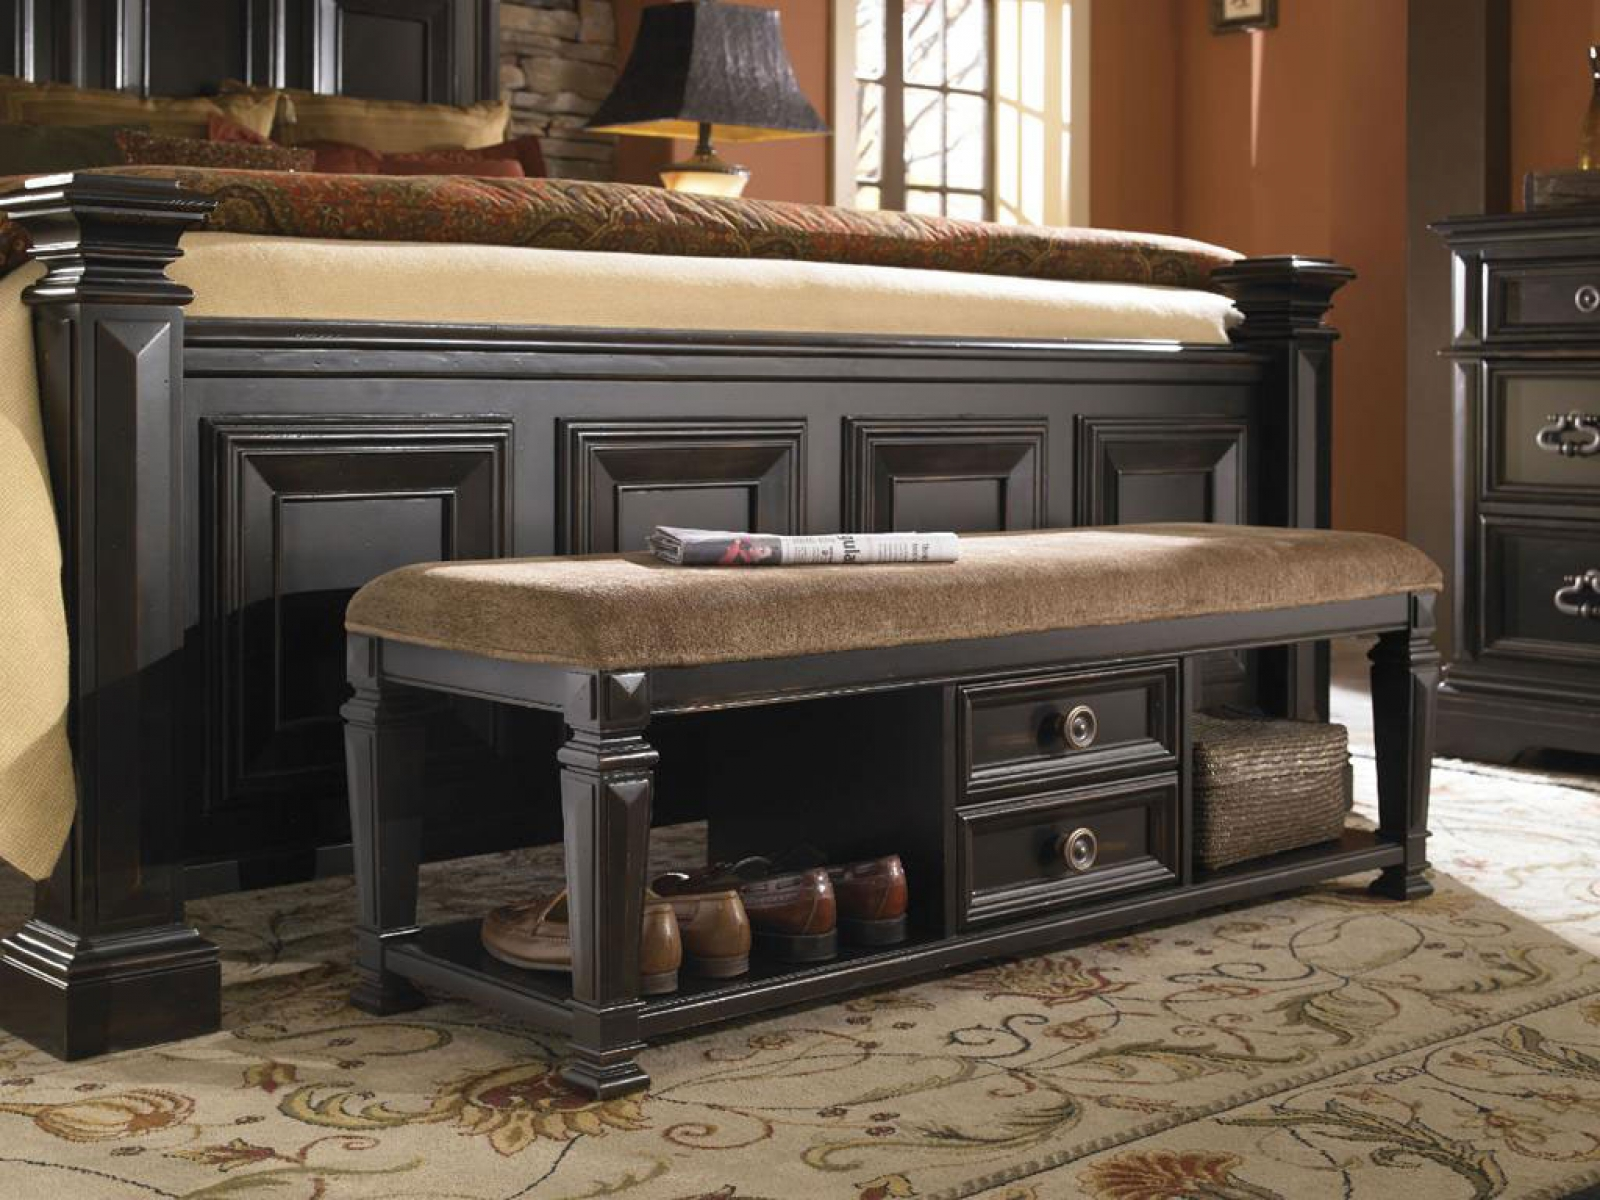 Bench By Bed: Add An Extra Seating Or Storage To Your Bedroom With An